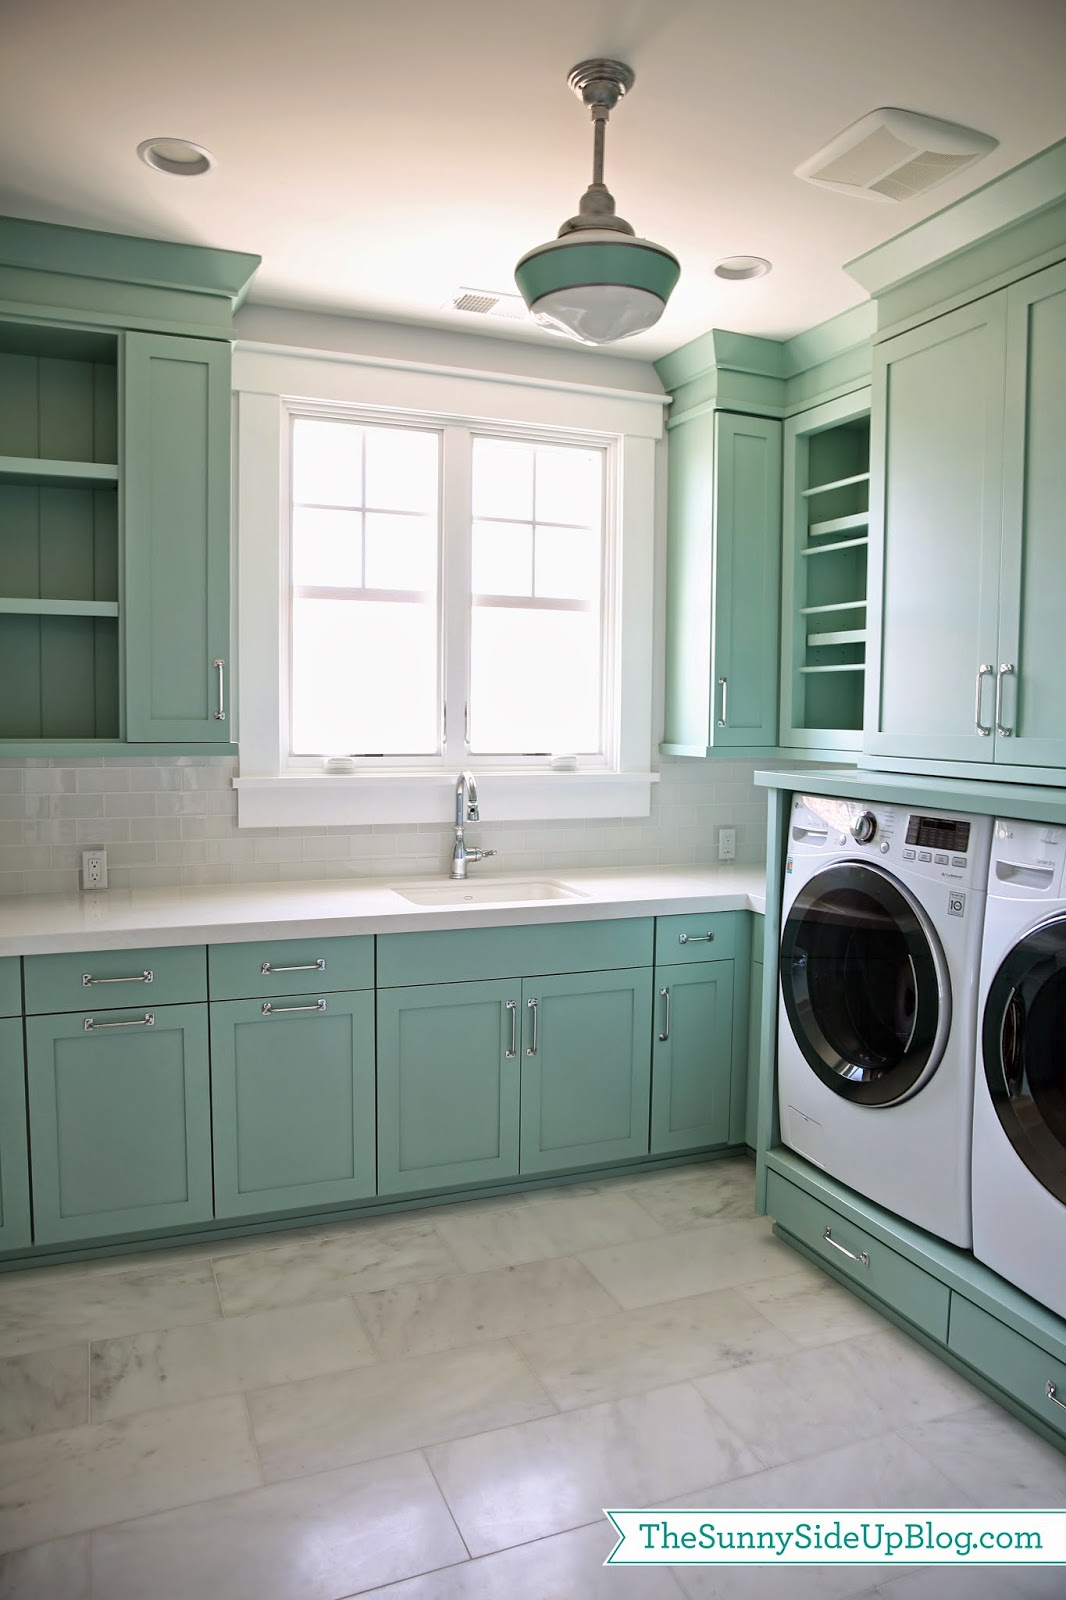 New house tour the sunny side up blog for How to add a laundry room to your house